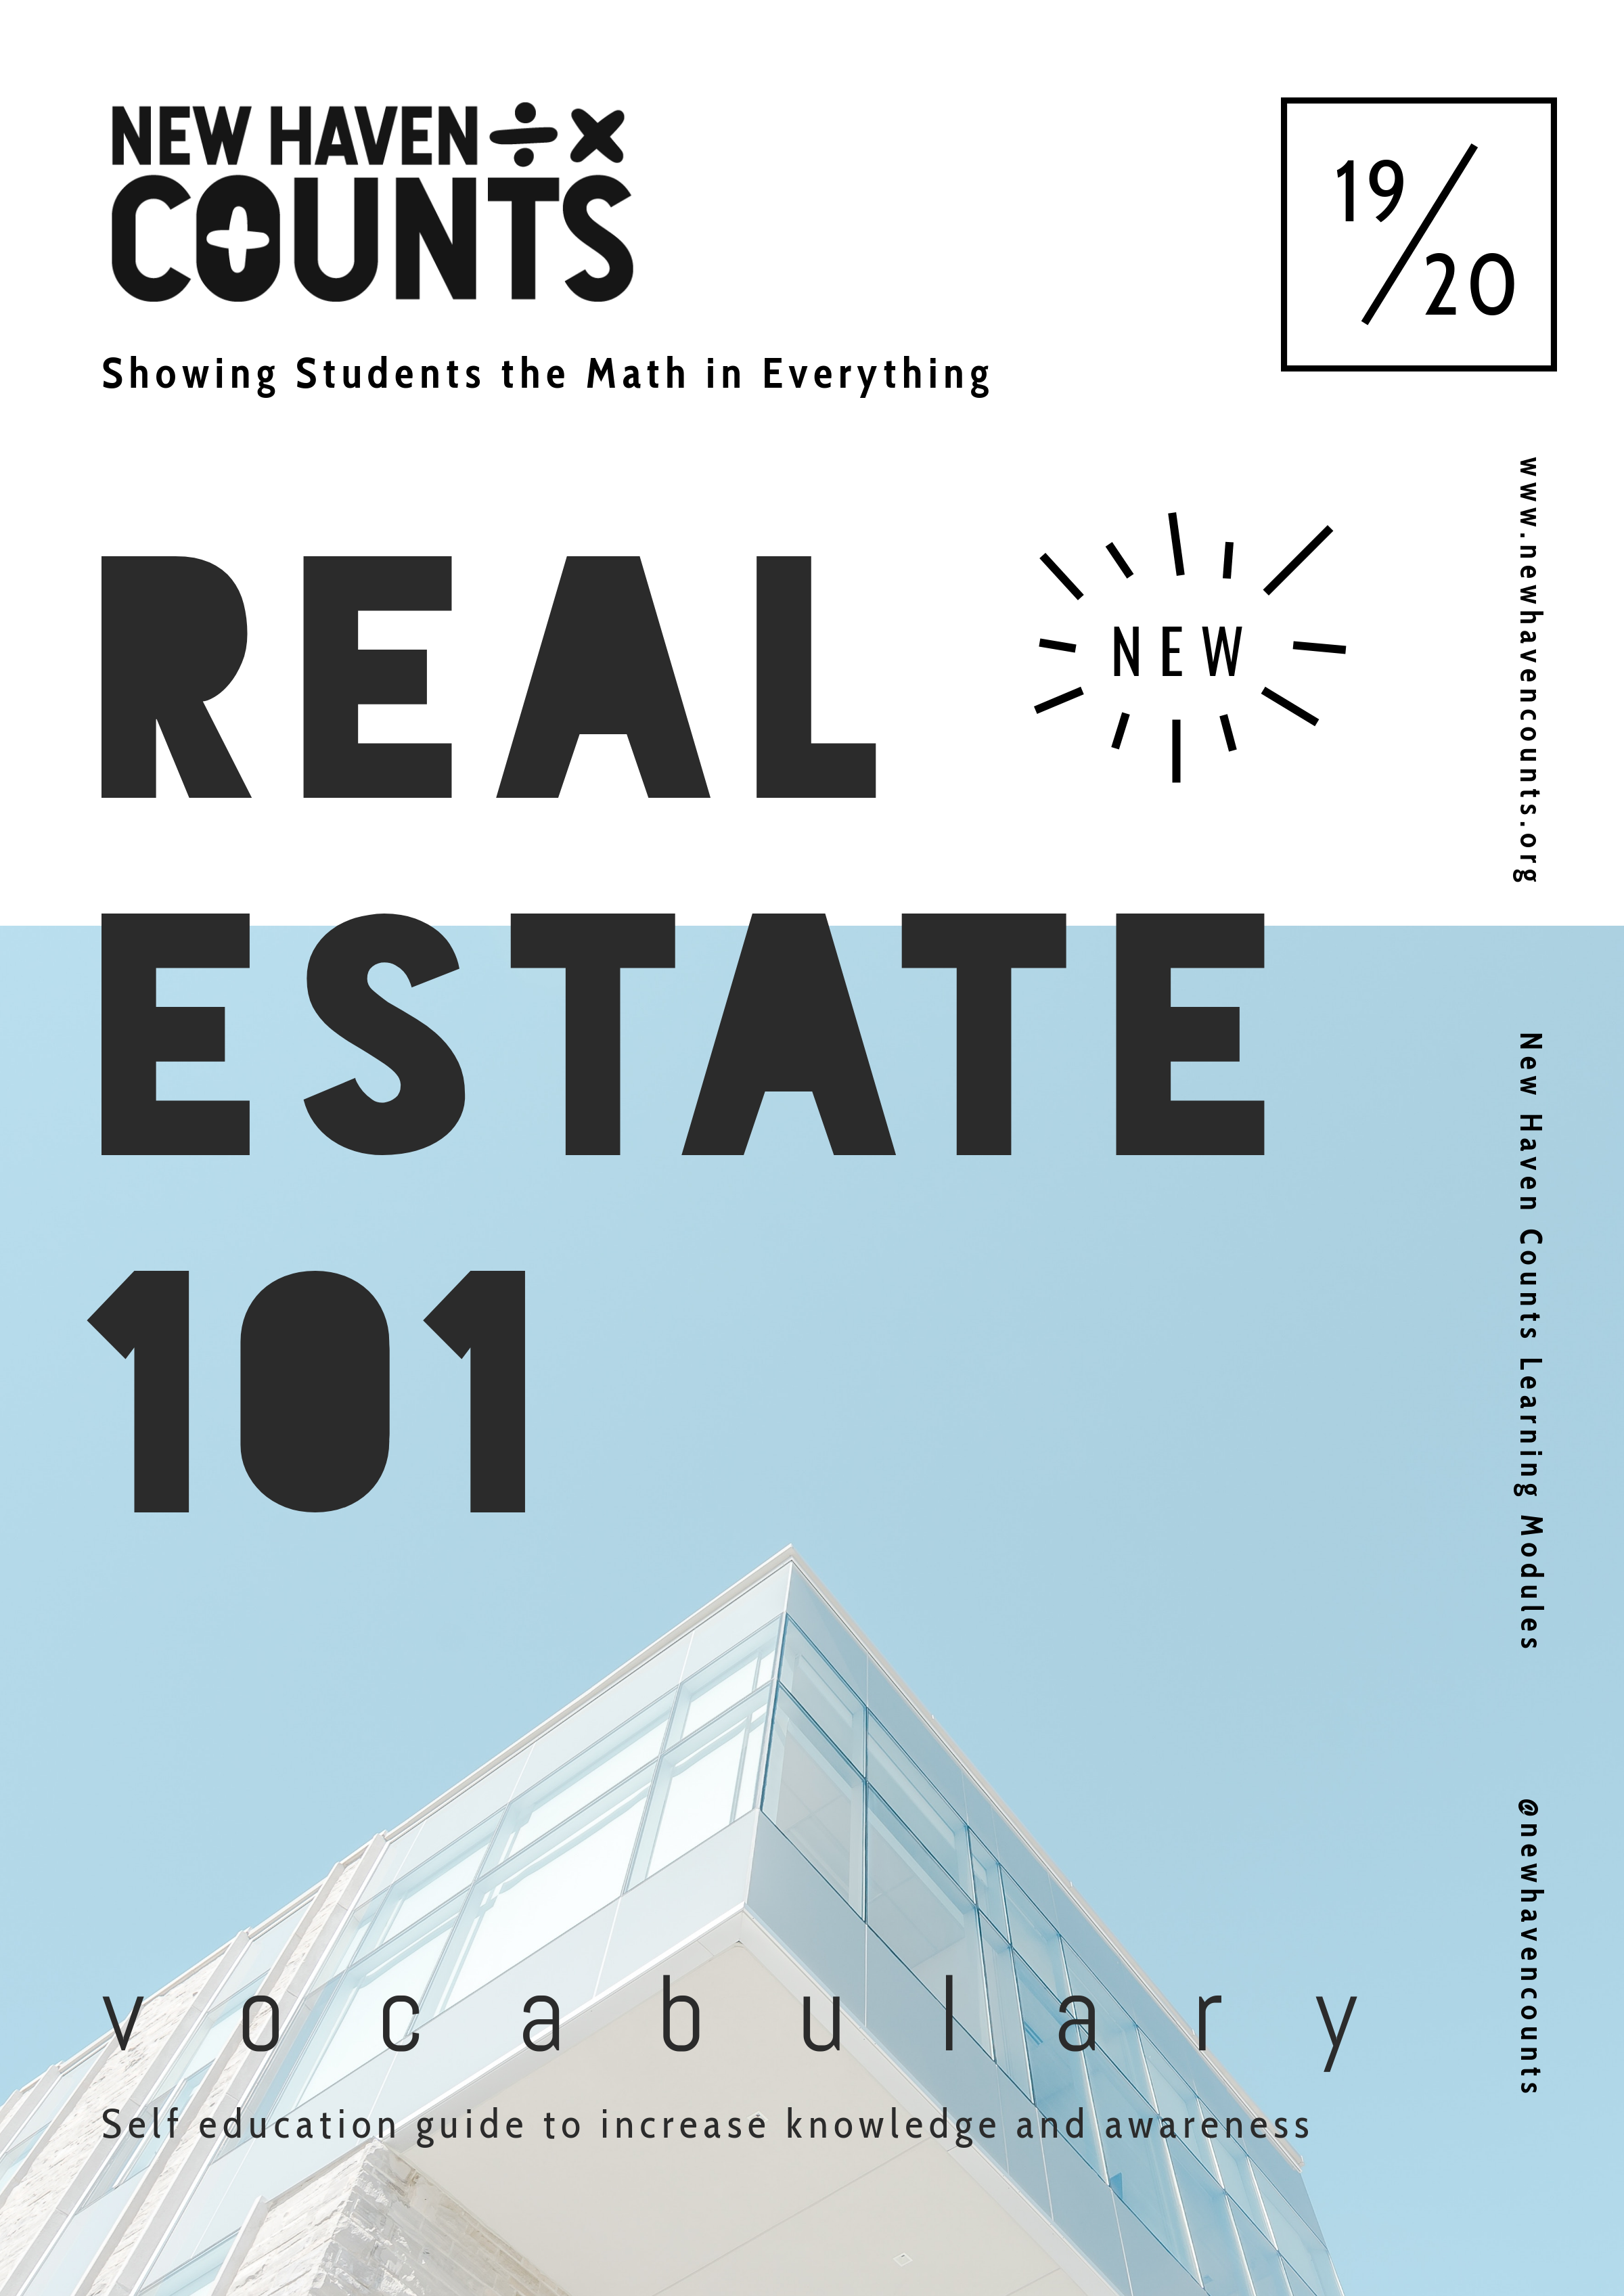 NHC - Vocabulary - Cover Page - Real Estate - New.png